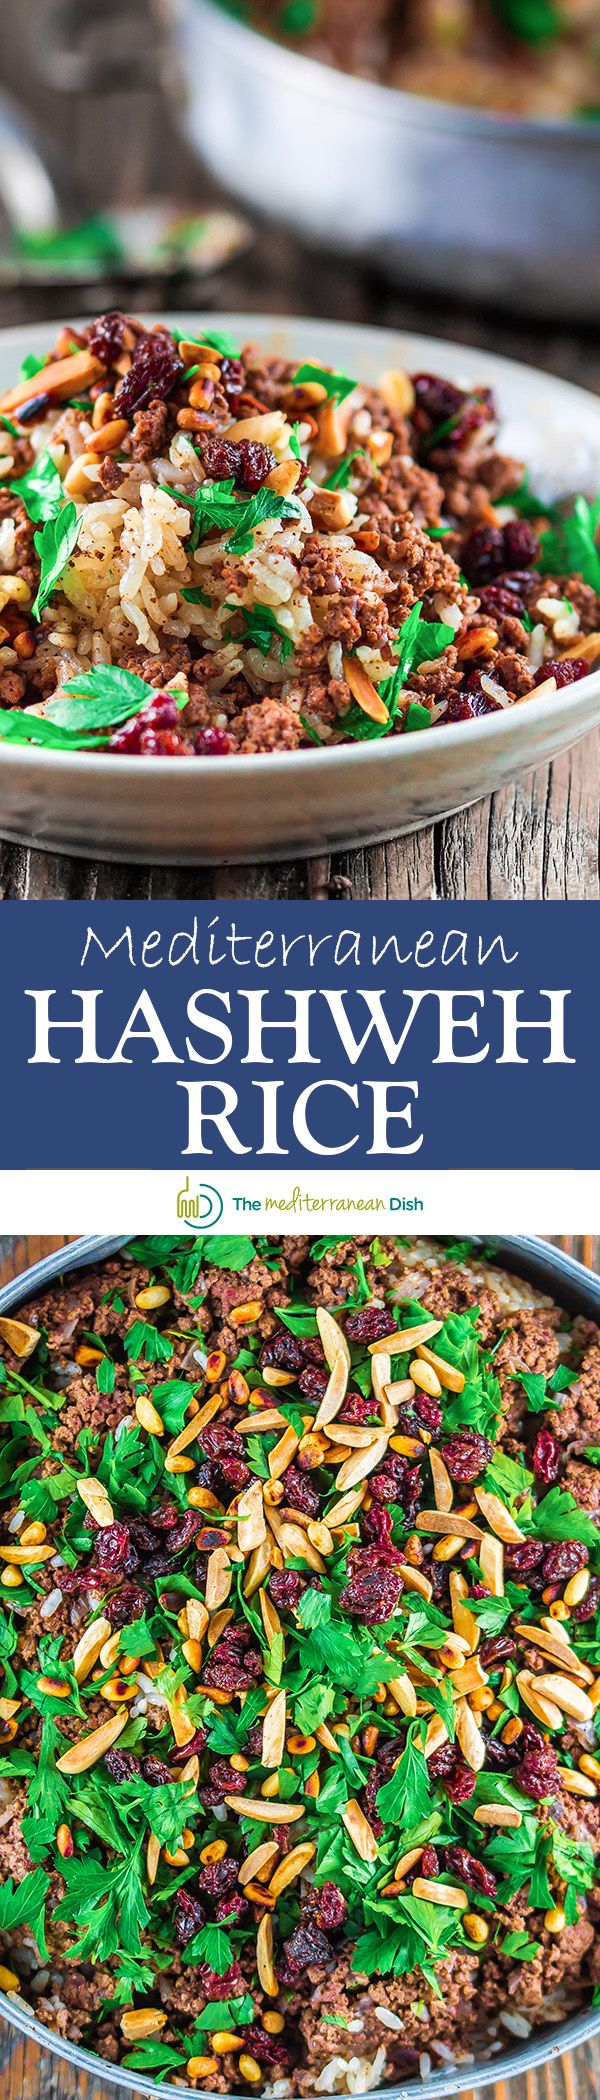 Mediterranean Hashweh Rice (Ground Beef and Rice) | The Mediterranean Dish. Spiced ground beef and rice with nuts and raisins. Exceptional rice pilaf; you will want seconds!